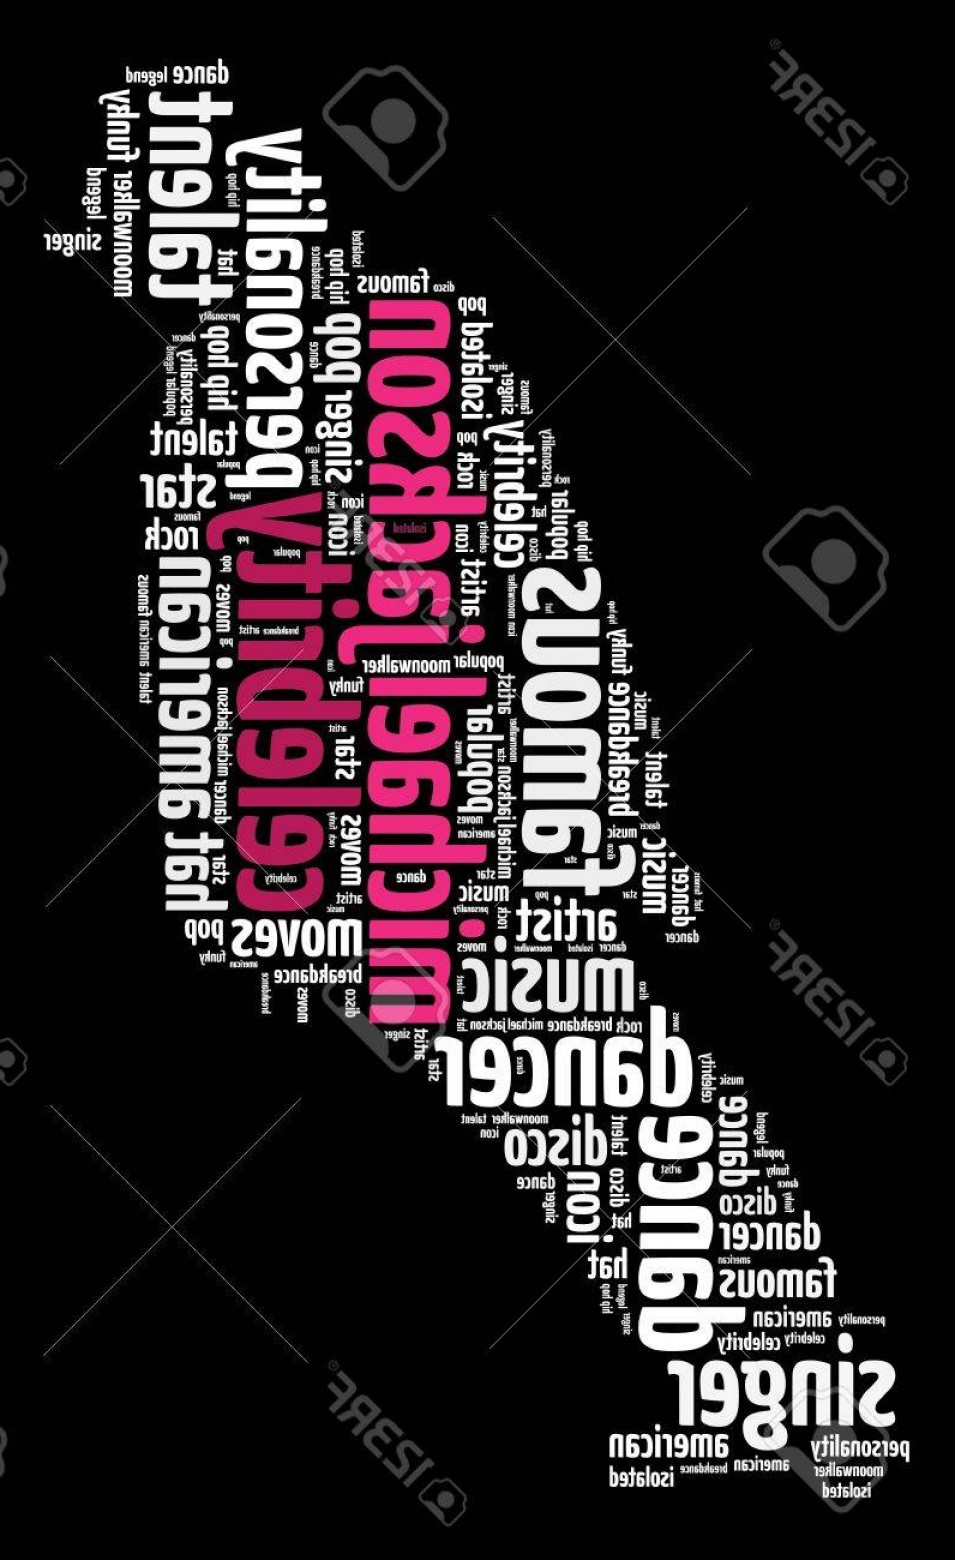 Bad Michael Jackson Vector: Photomichael Jackson Info Text Graphics And Arrangement Word Clouds Concept